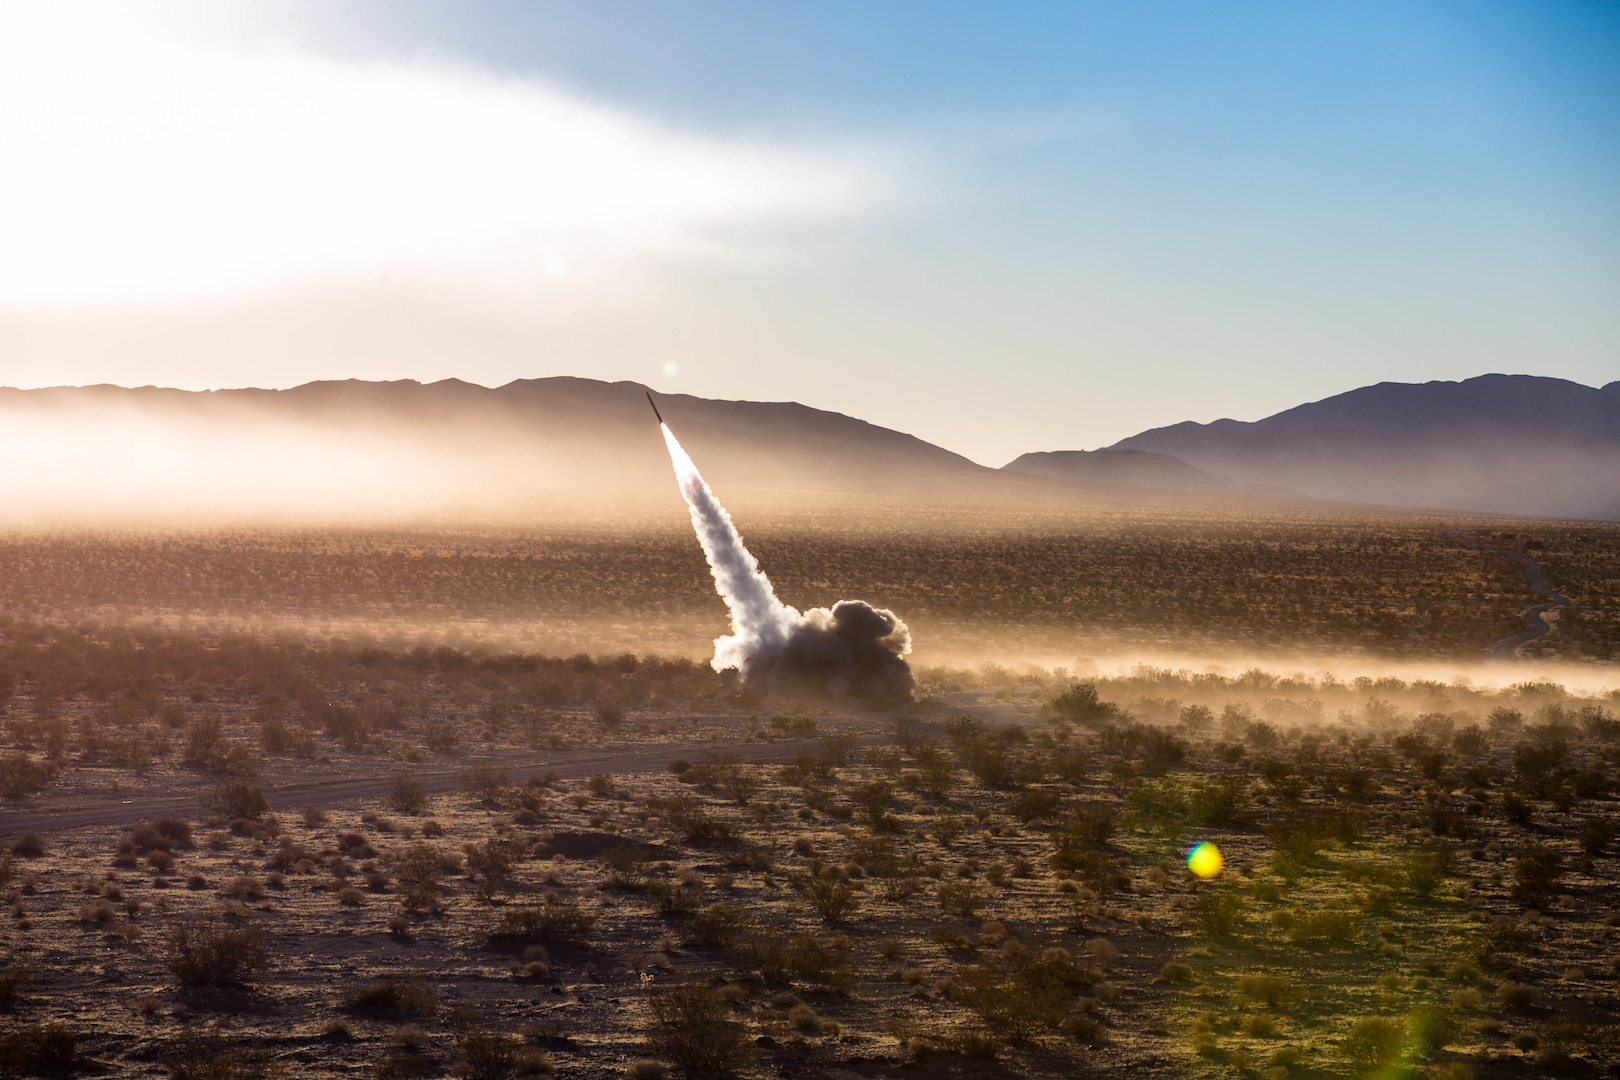 U.S. Marines assigned to Battery R, 5th Battalion, 11th Marine Regiment launch the High Mobility Artillery Rocket System from a Guided Multiple Launch Rocket System during Operation Steel Knight aboard the Marine Corps Air Ground Combat Center, Twentynine Palms, Calif., Dec. 7, 2017. HIMARS is a precision rocket system used to eliminate enemy positions with extreme accuracy. (U.S. Marine Corps photo by Pfc. William Chockey)